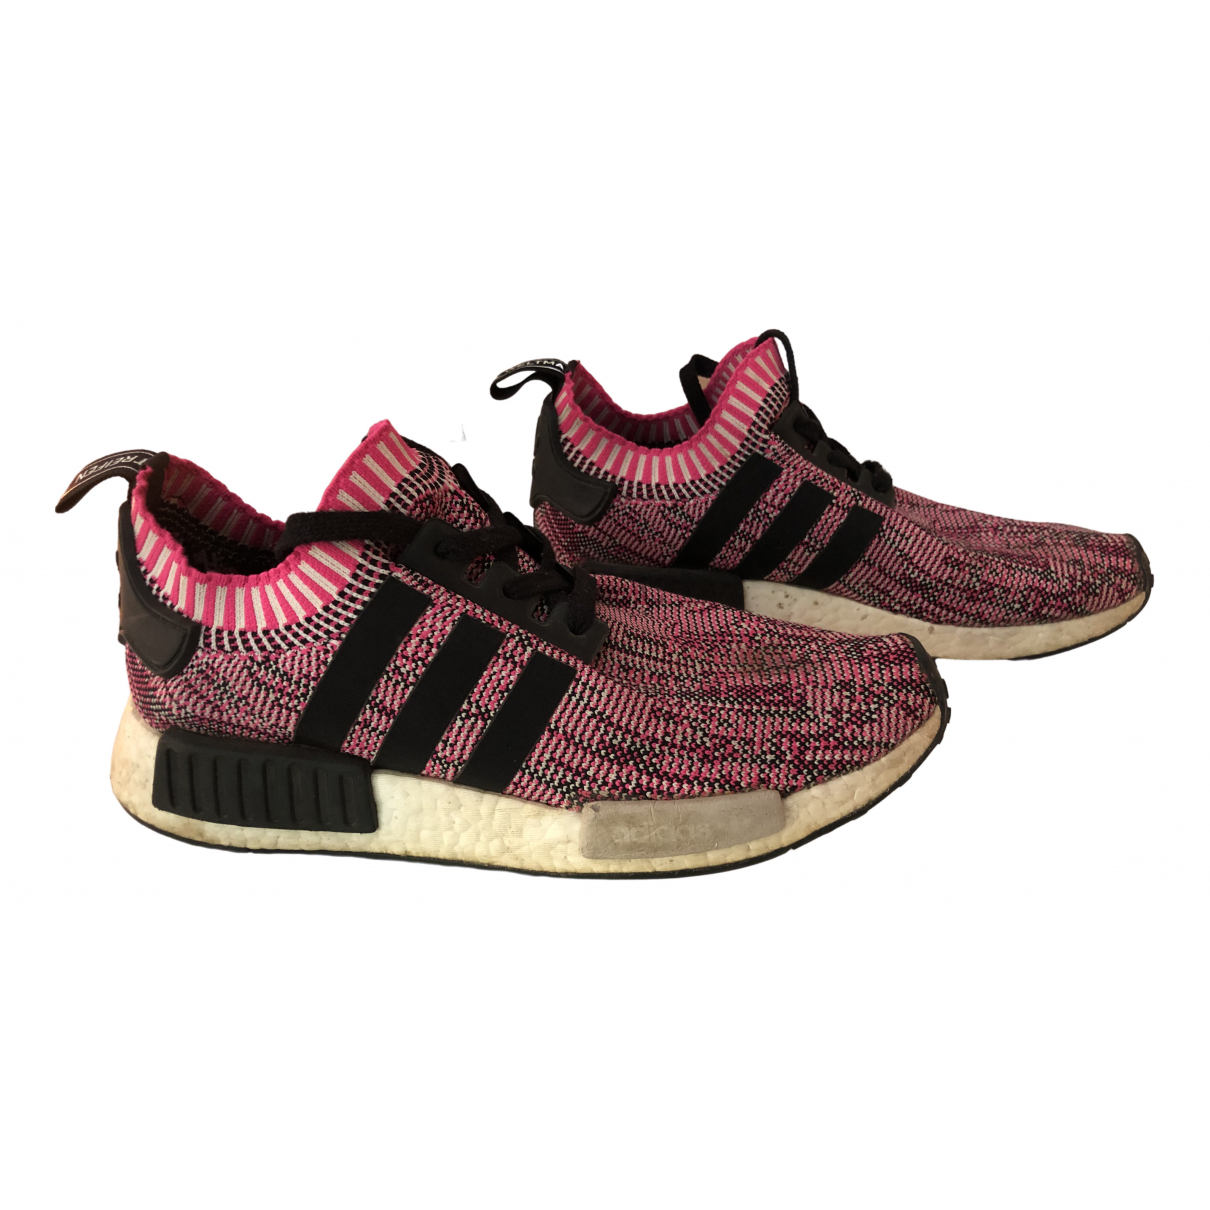 Adidas Nmd Sneakers in  Rosa Polyester